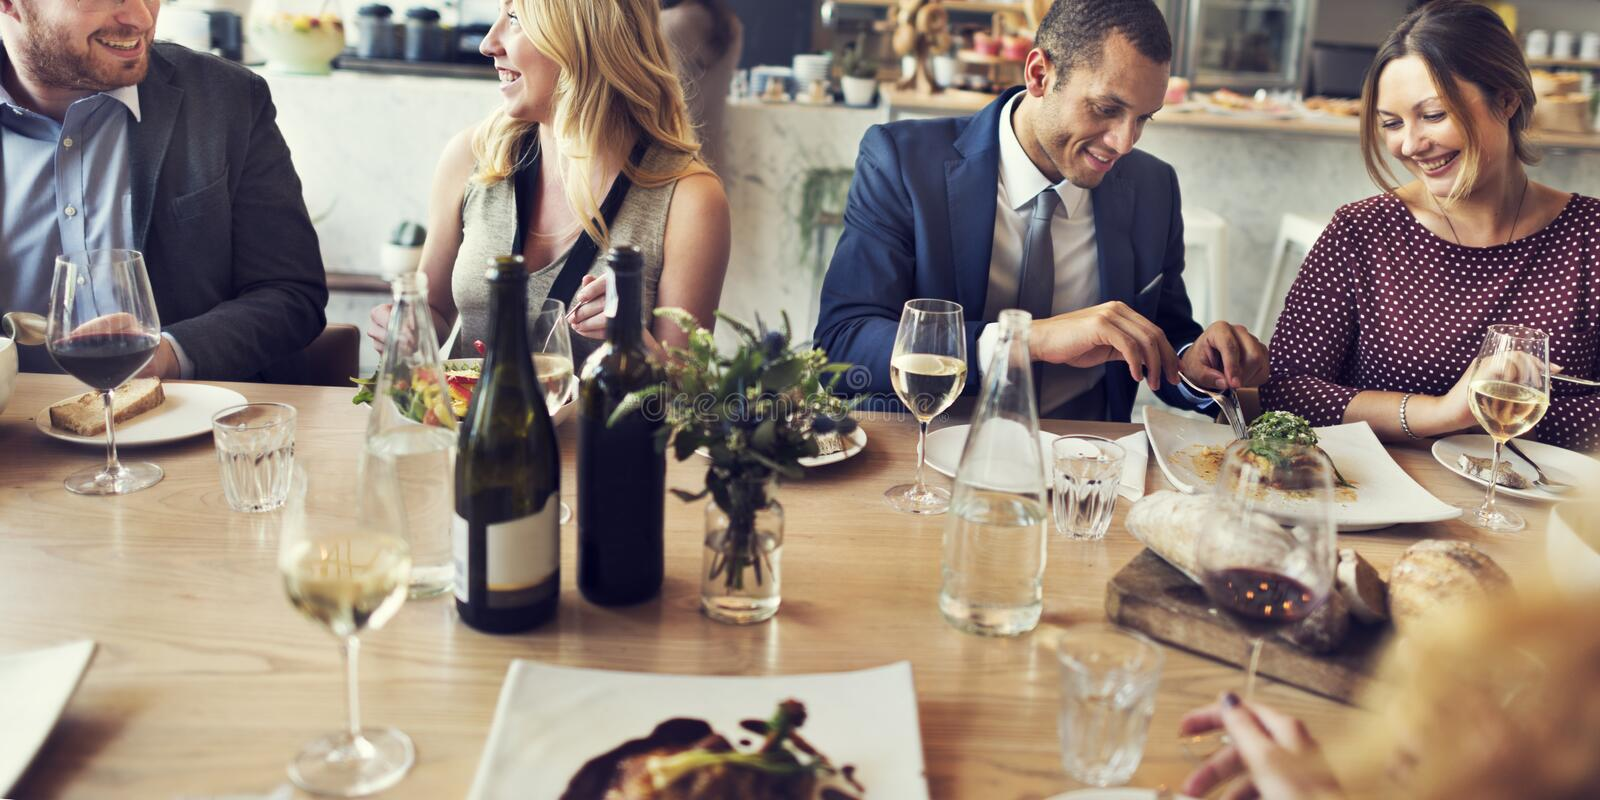 Business People Lunch Dinner Meeting Restaurant Concept stock images